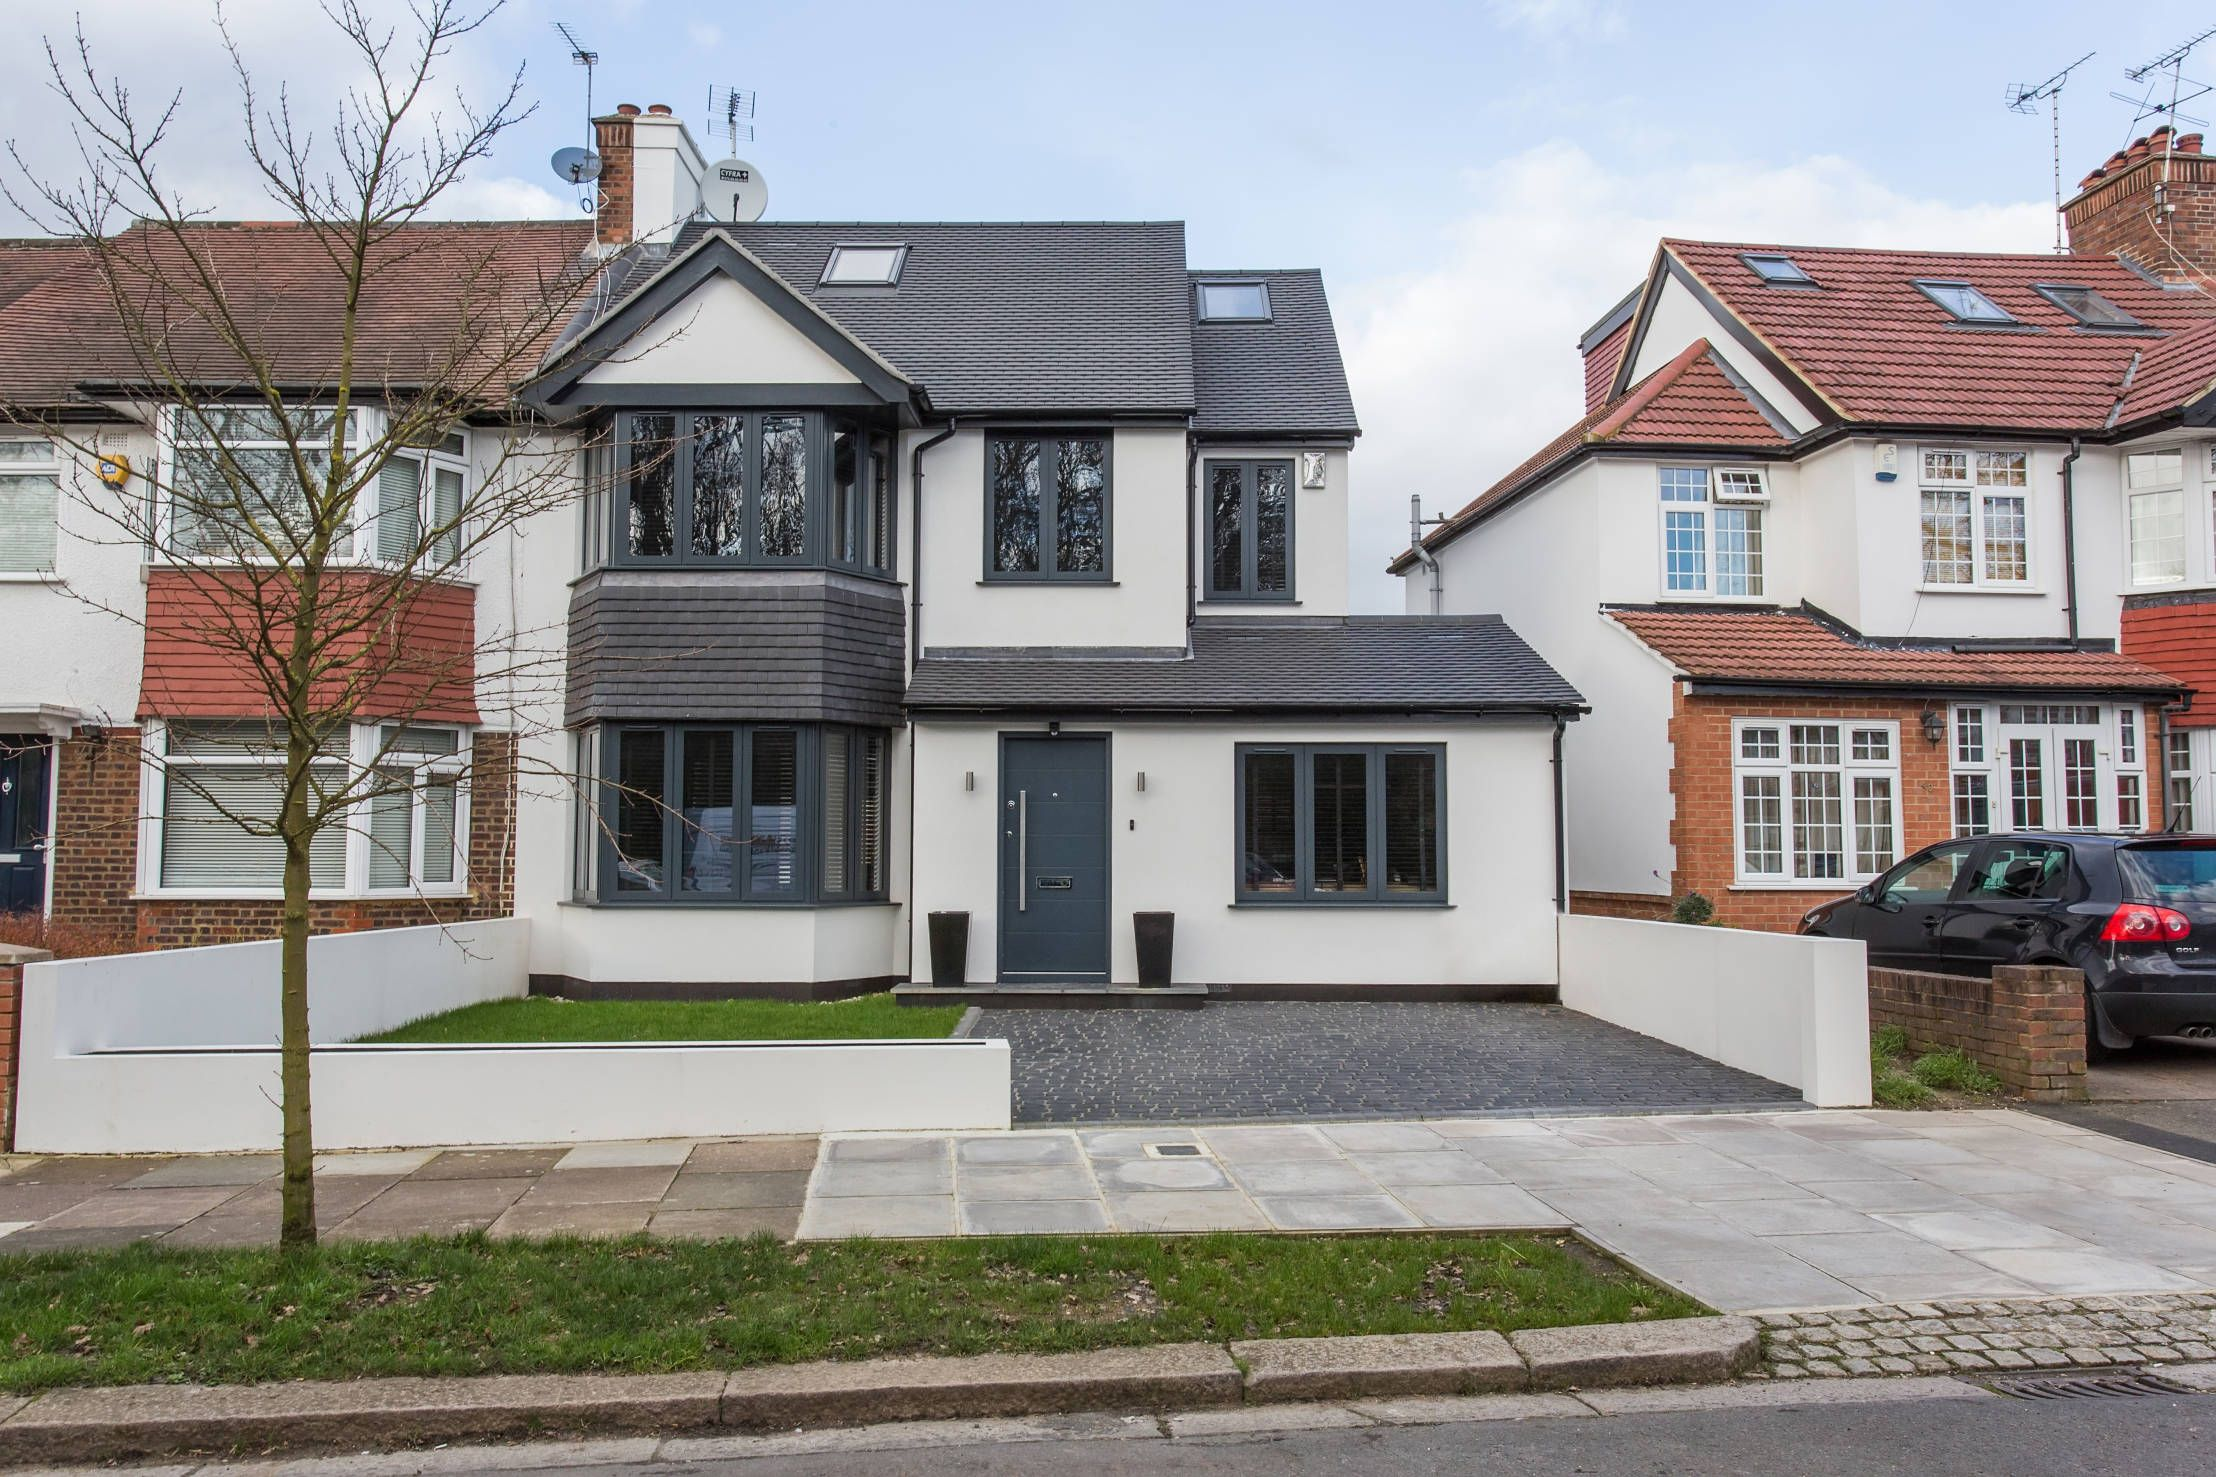 This stunning home in Wembley takes modern